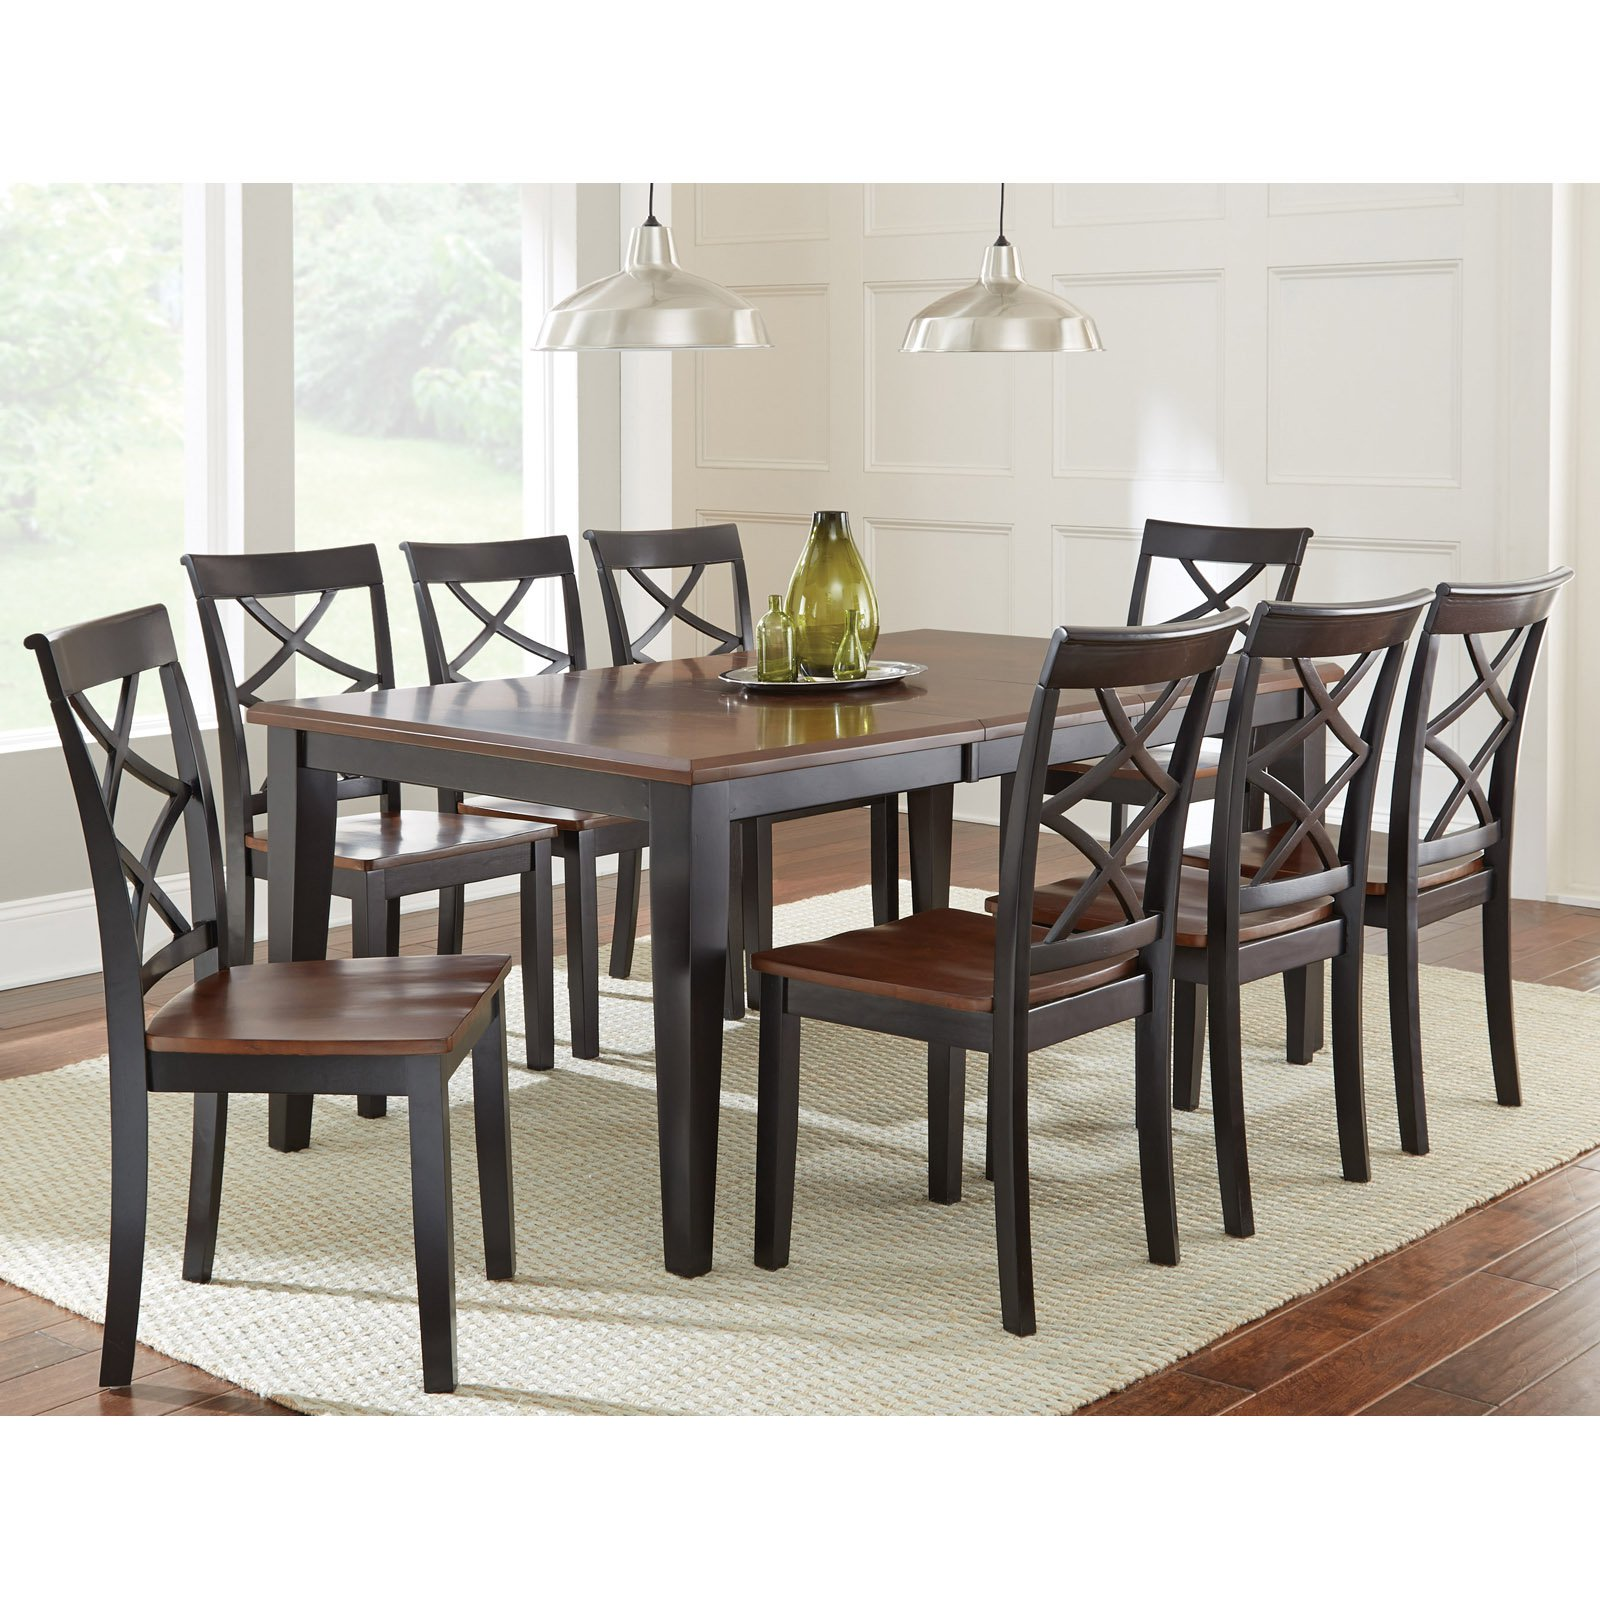 Steve Silver Rani 9 Piece Dining Table Set